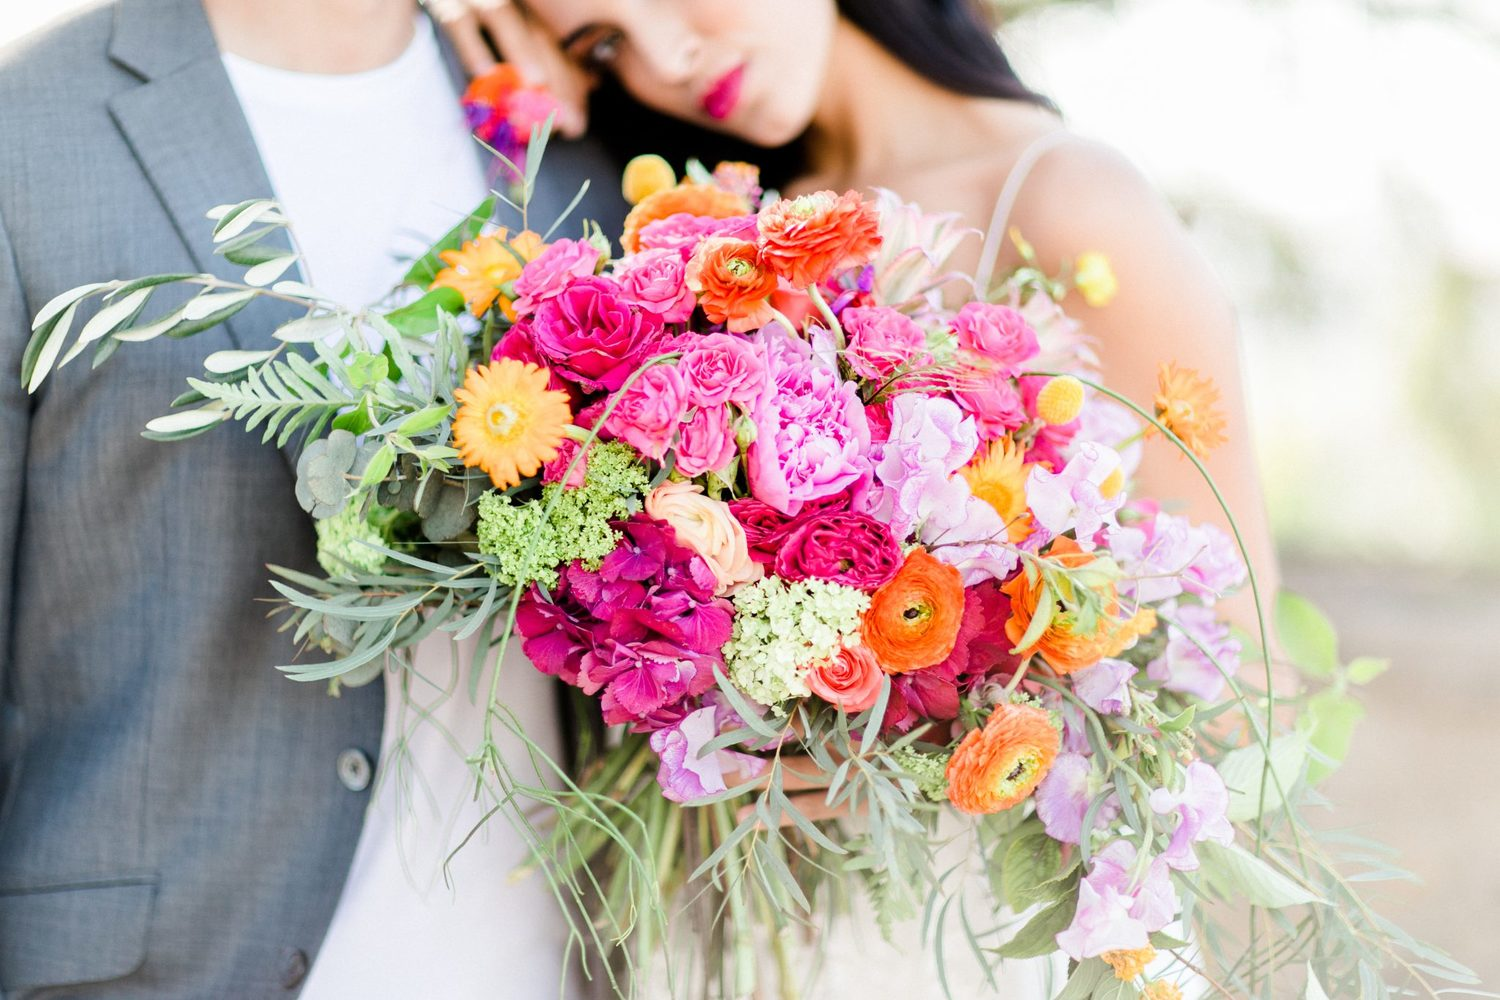 colorful bridal bouquet, farbenfroher Brautstrauß, bunter Brautstrauß